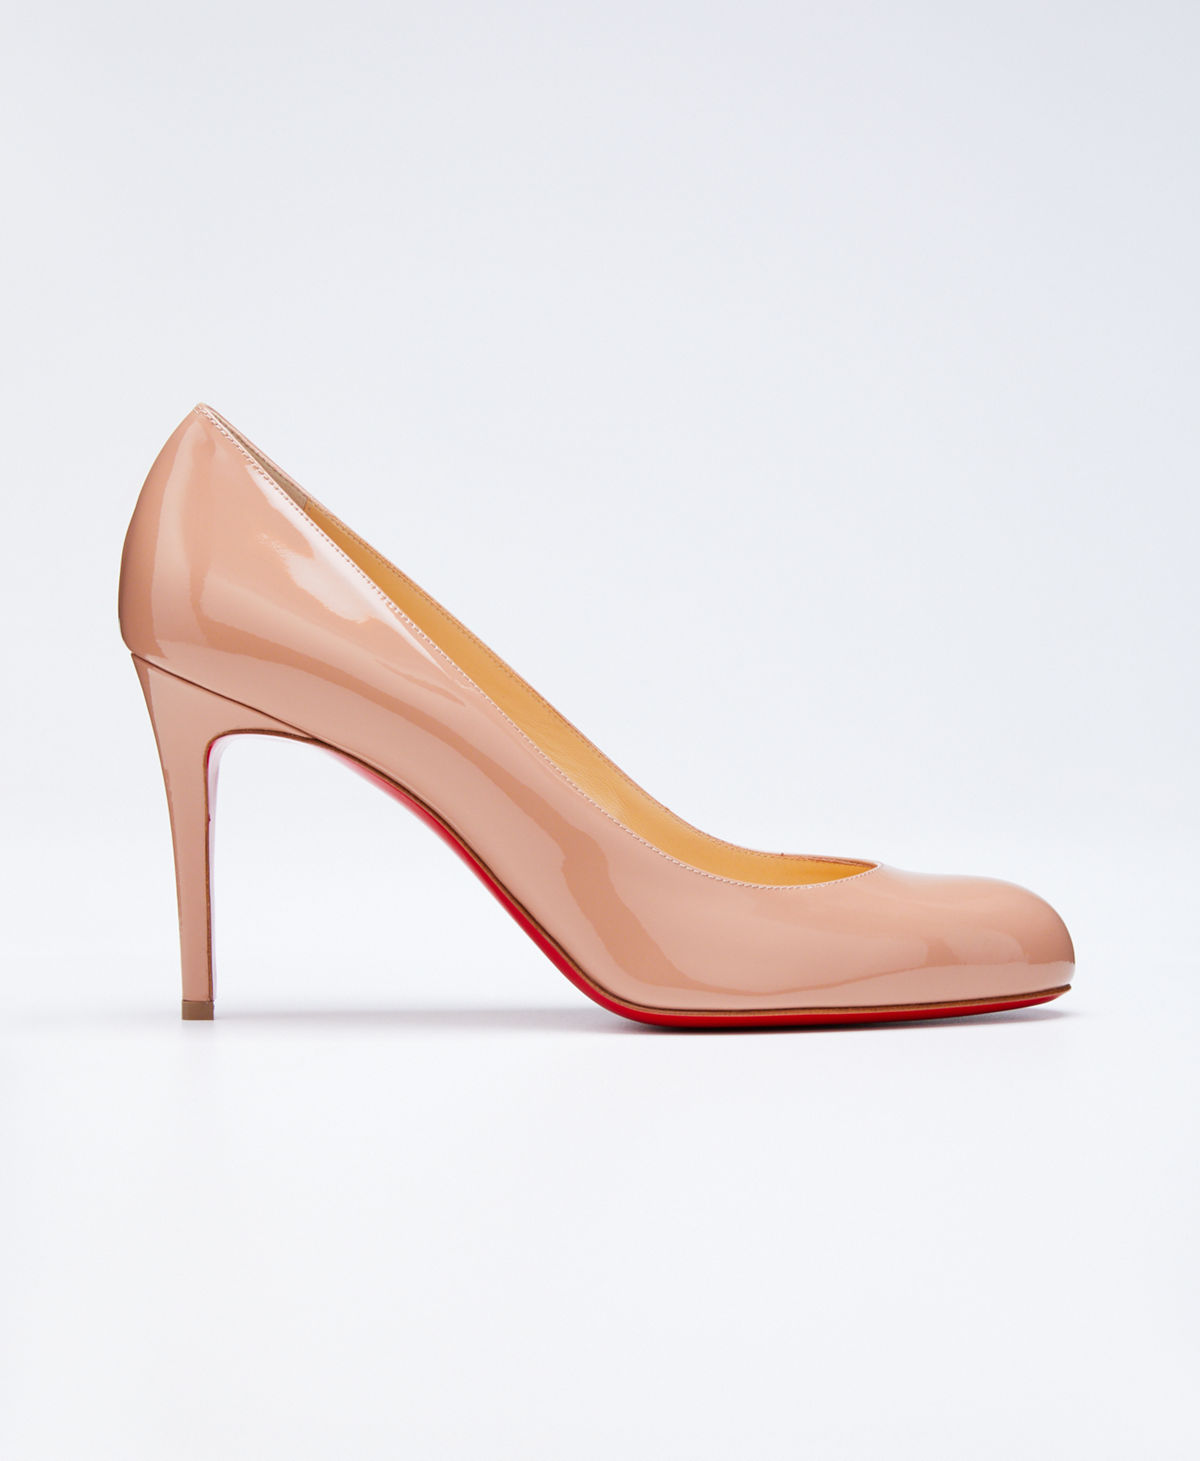 brand new b0461 465e8 Simple Patent 85mm Red Sole Pump